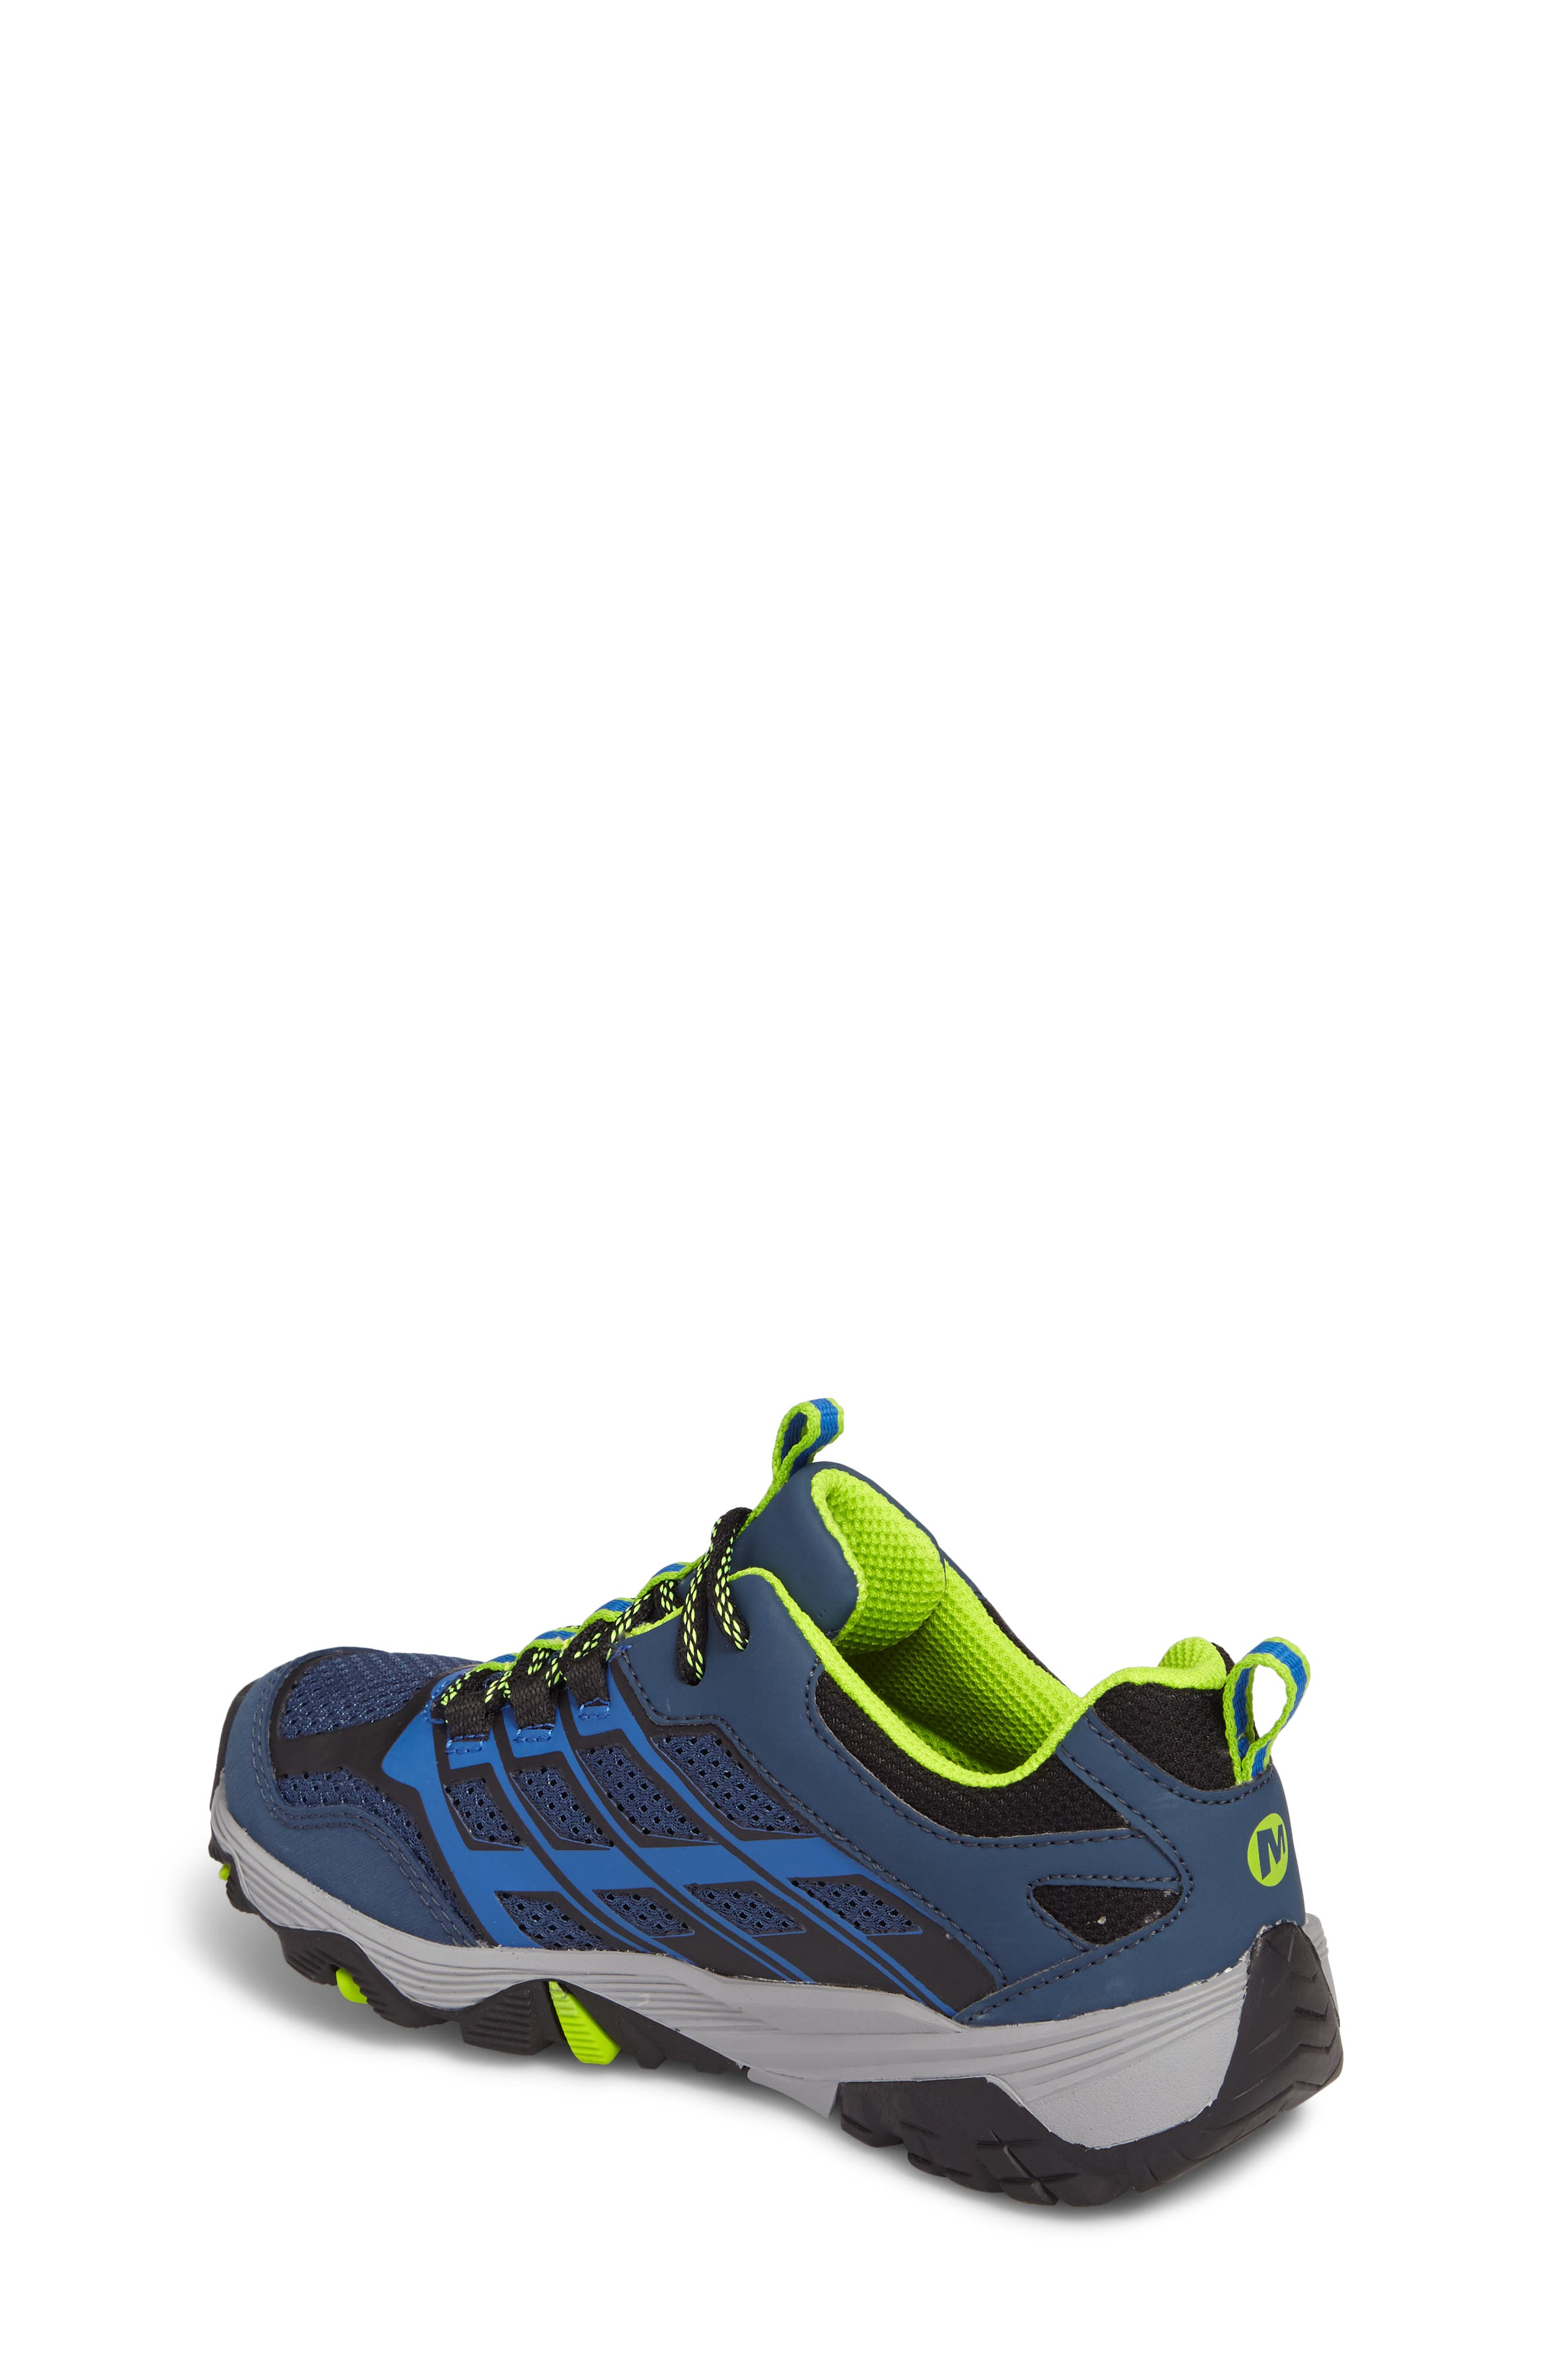 MERRELL, Moab FST Polar Low Waterproof Sneaker, Alternate thumbnail 2, color, NAVY/ BLUE